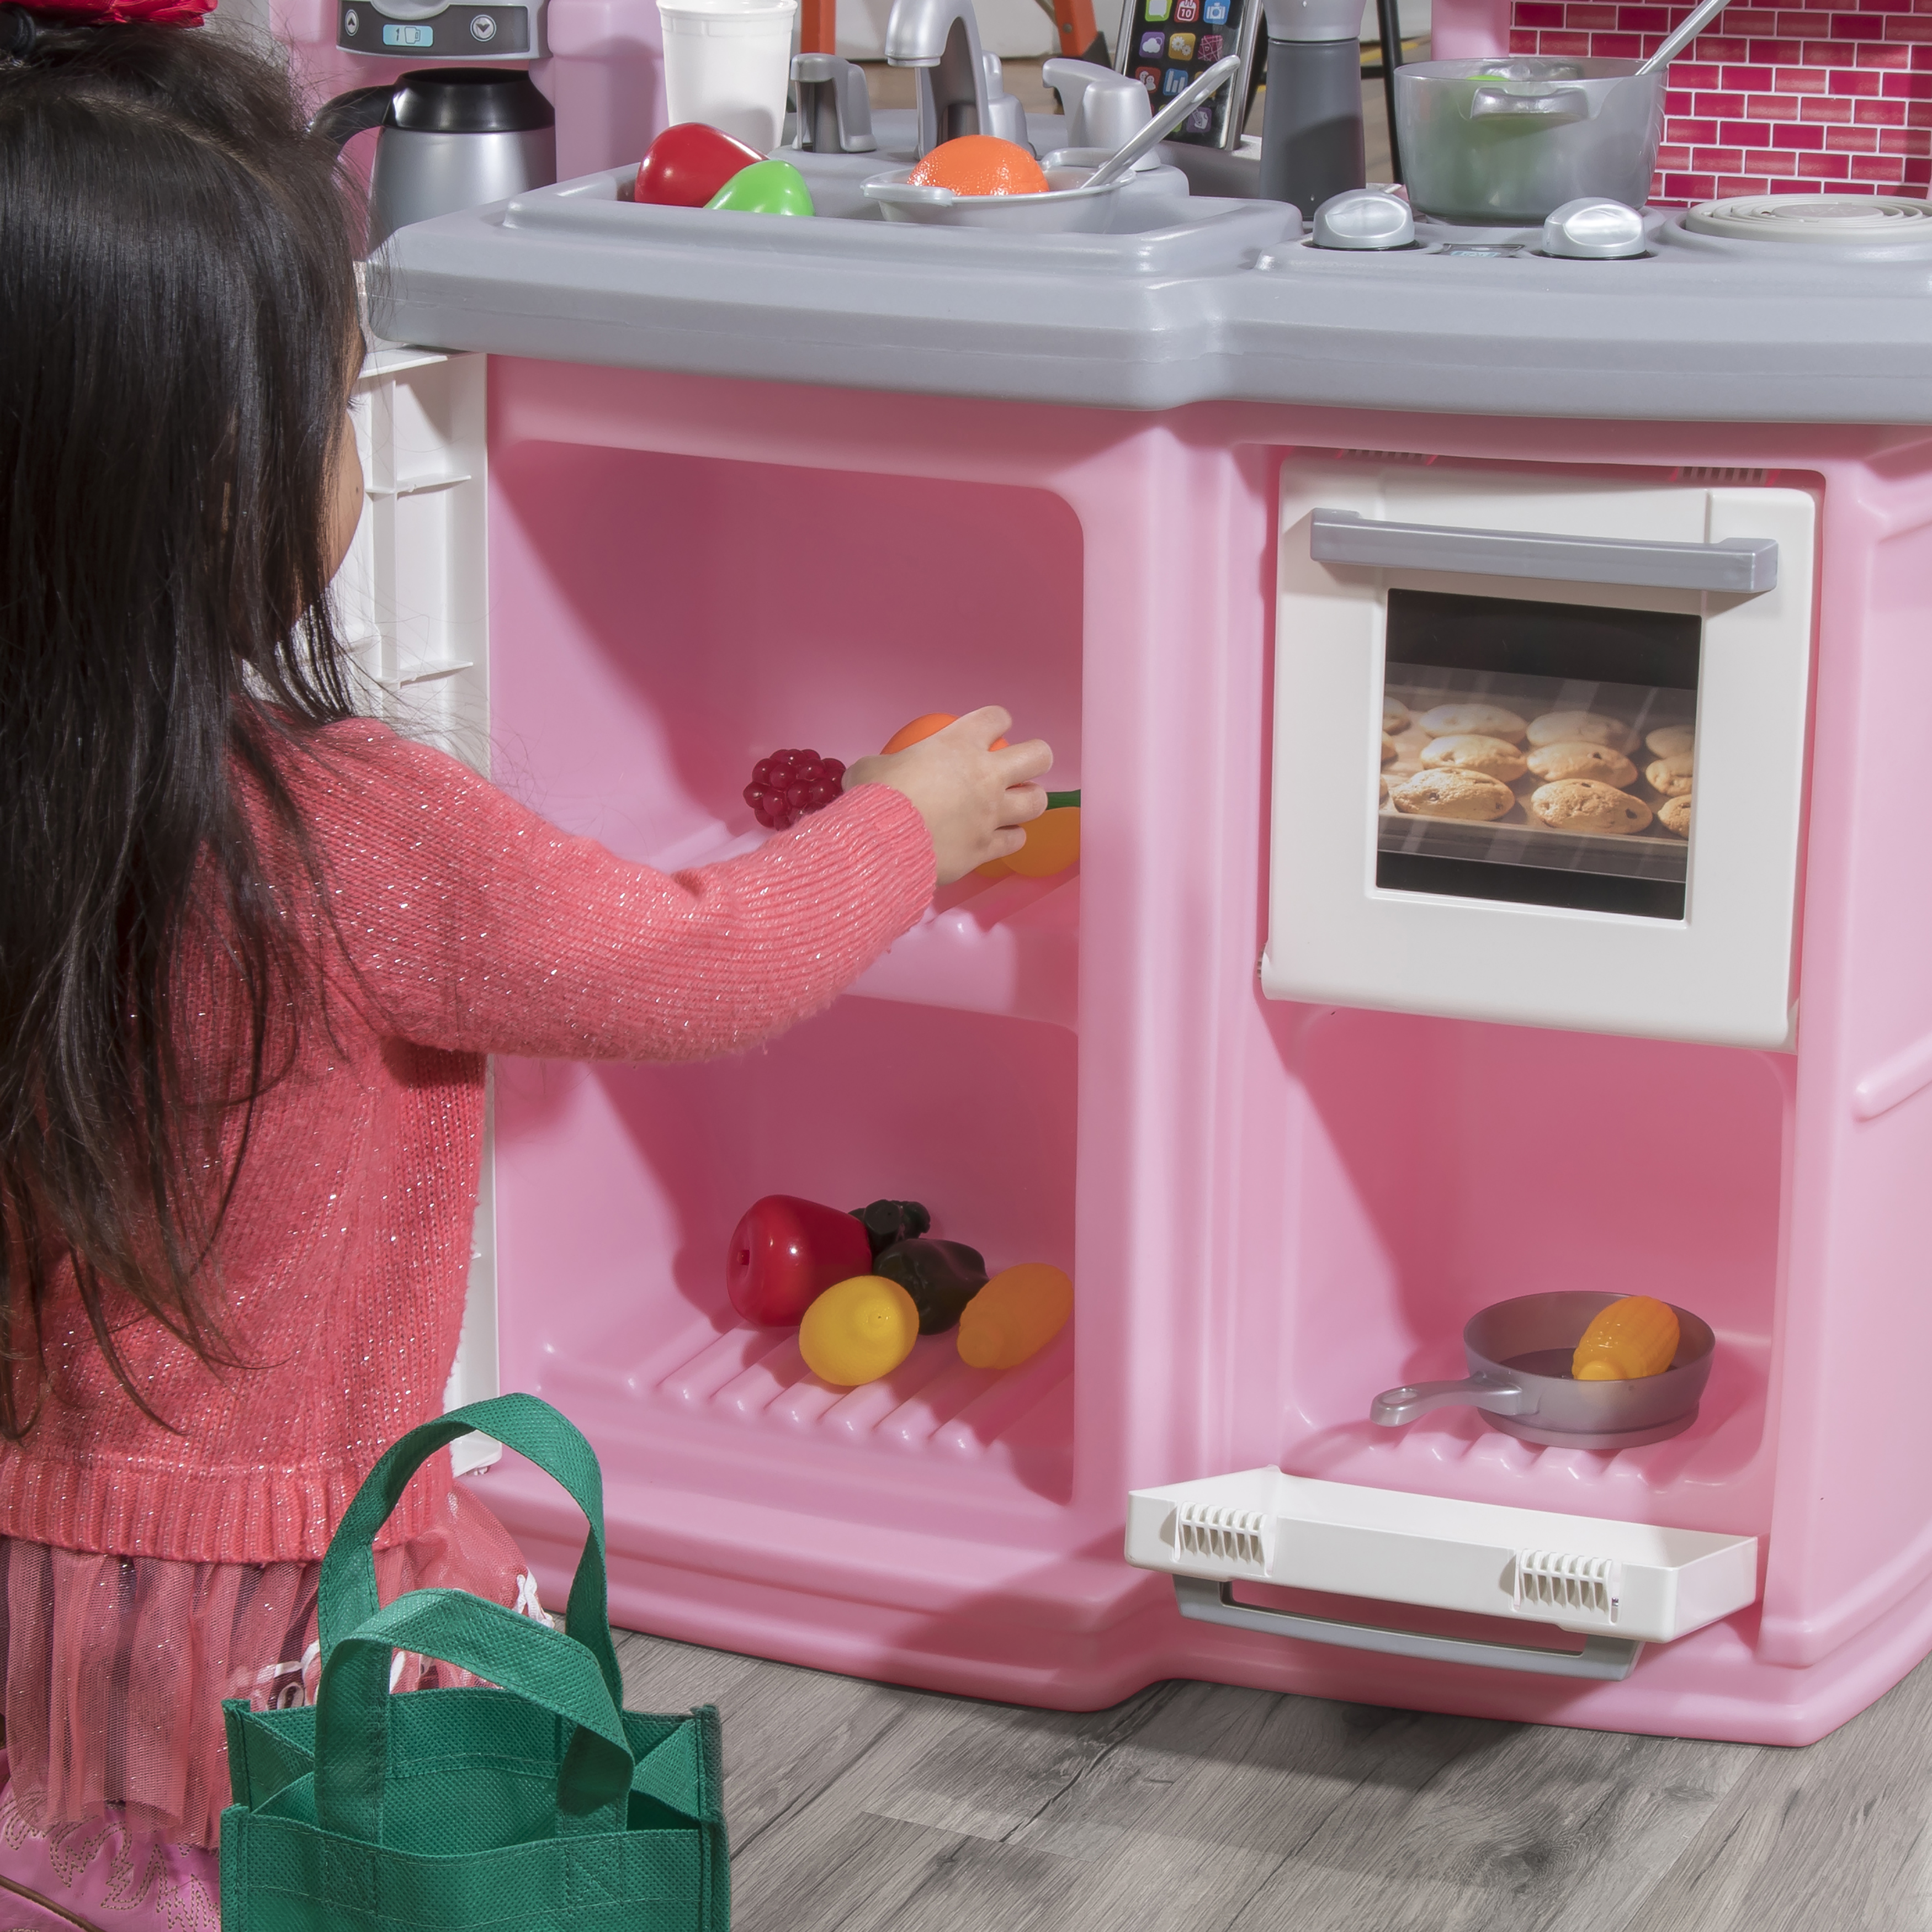 Step2 Great Gourmet Kitchen - Light Pink oven